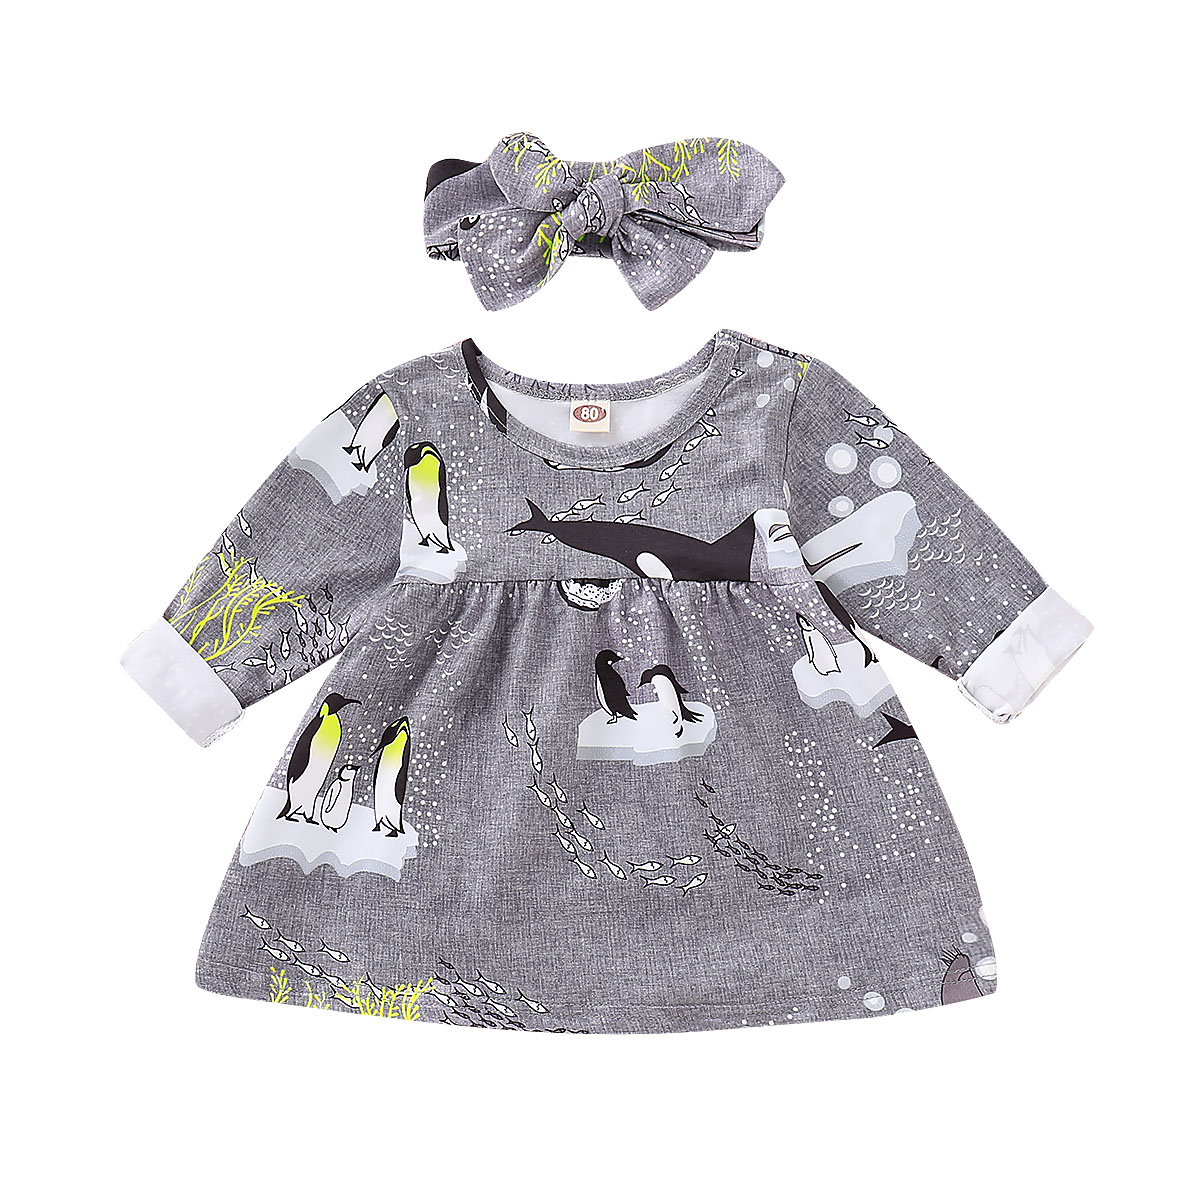 Kids Baby Girl Lace Cartoon Star Wars Party Pageant Dress Sundress Skirt Clothes